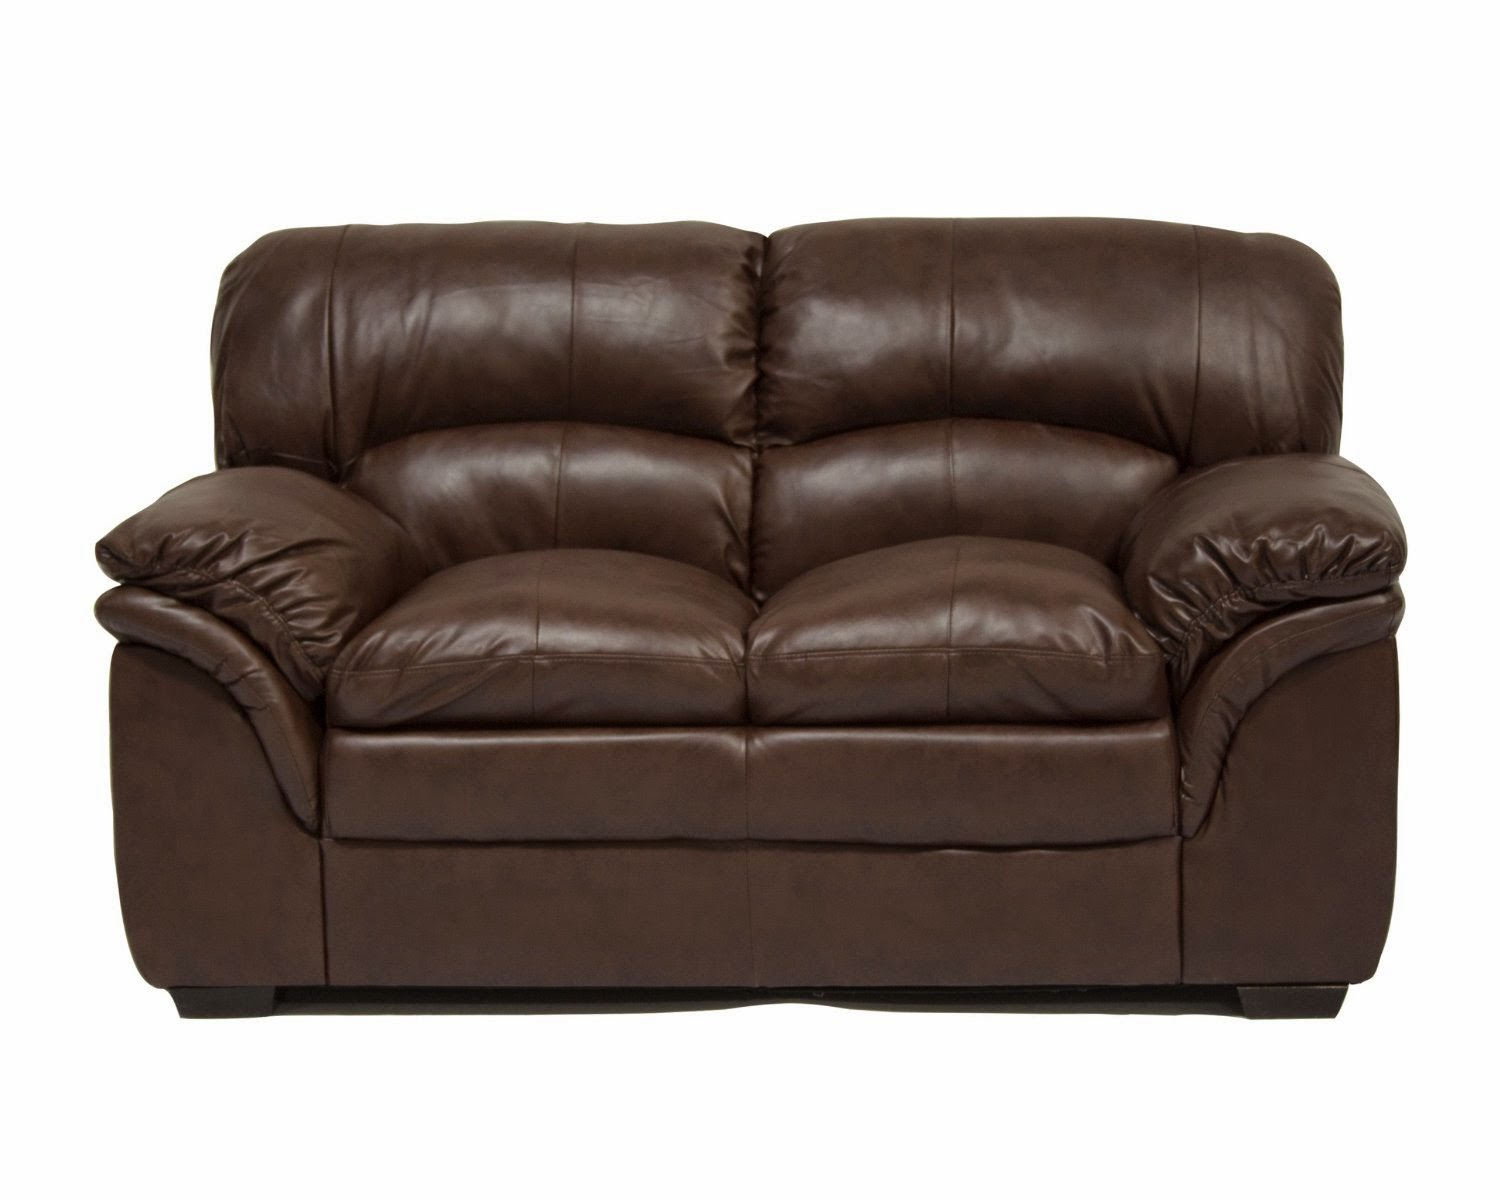 Best Recliner Sofa Brand Recommendation Wanted: Two Seater Recliner Sofa  India